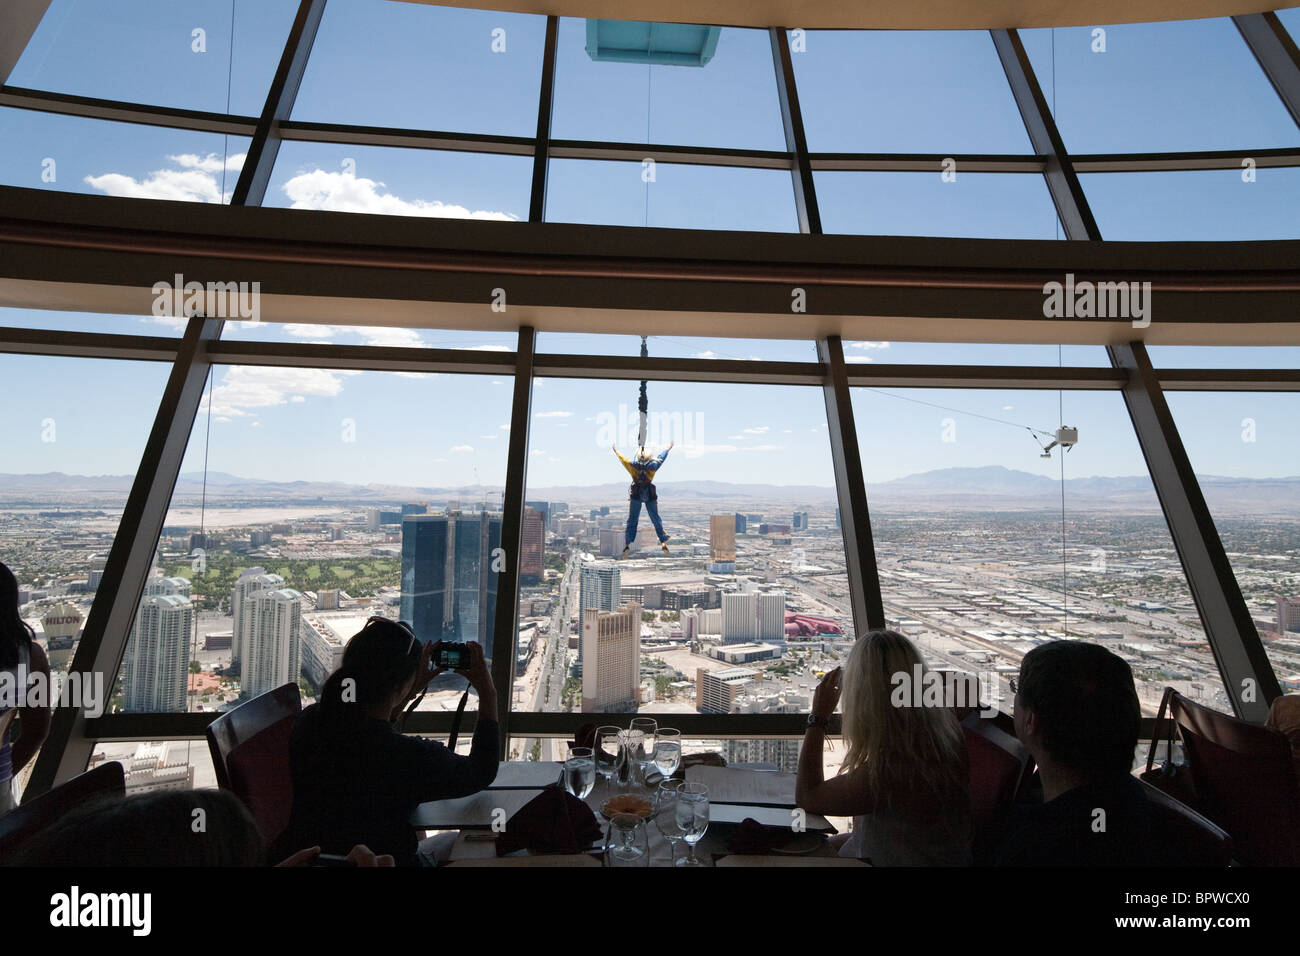 diners-in-the-top-of-the-world-restaurant-at-the-strat-or-stratosphere-BPWCX0.jpg